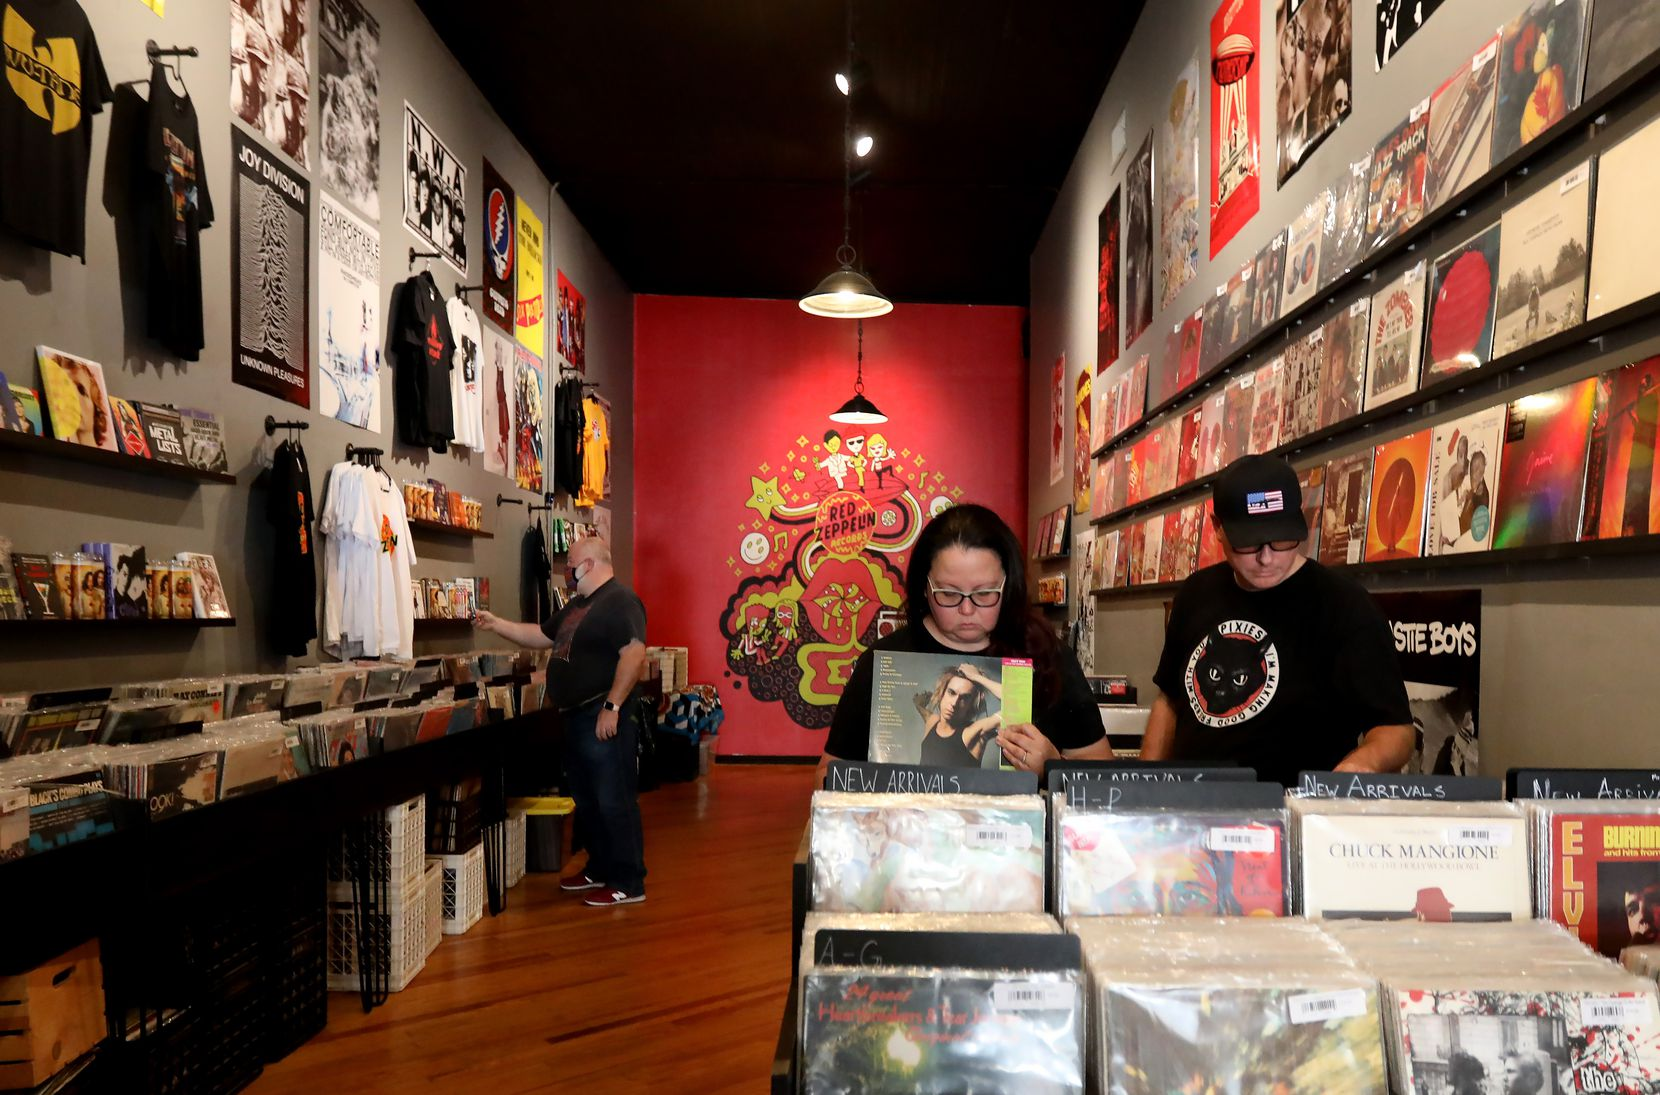 Ben and Rose Sloma look through records at Red Zeppelin, a record store in downtown McKinney.